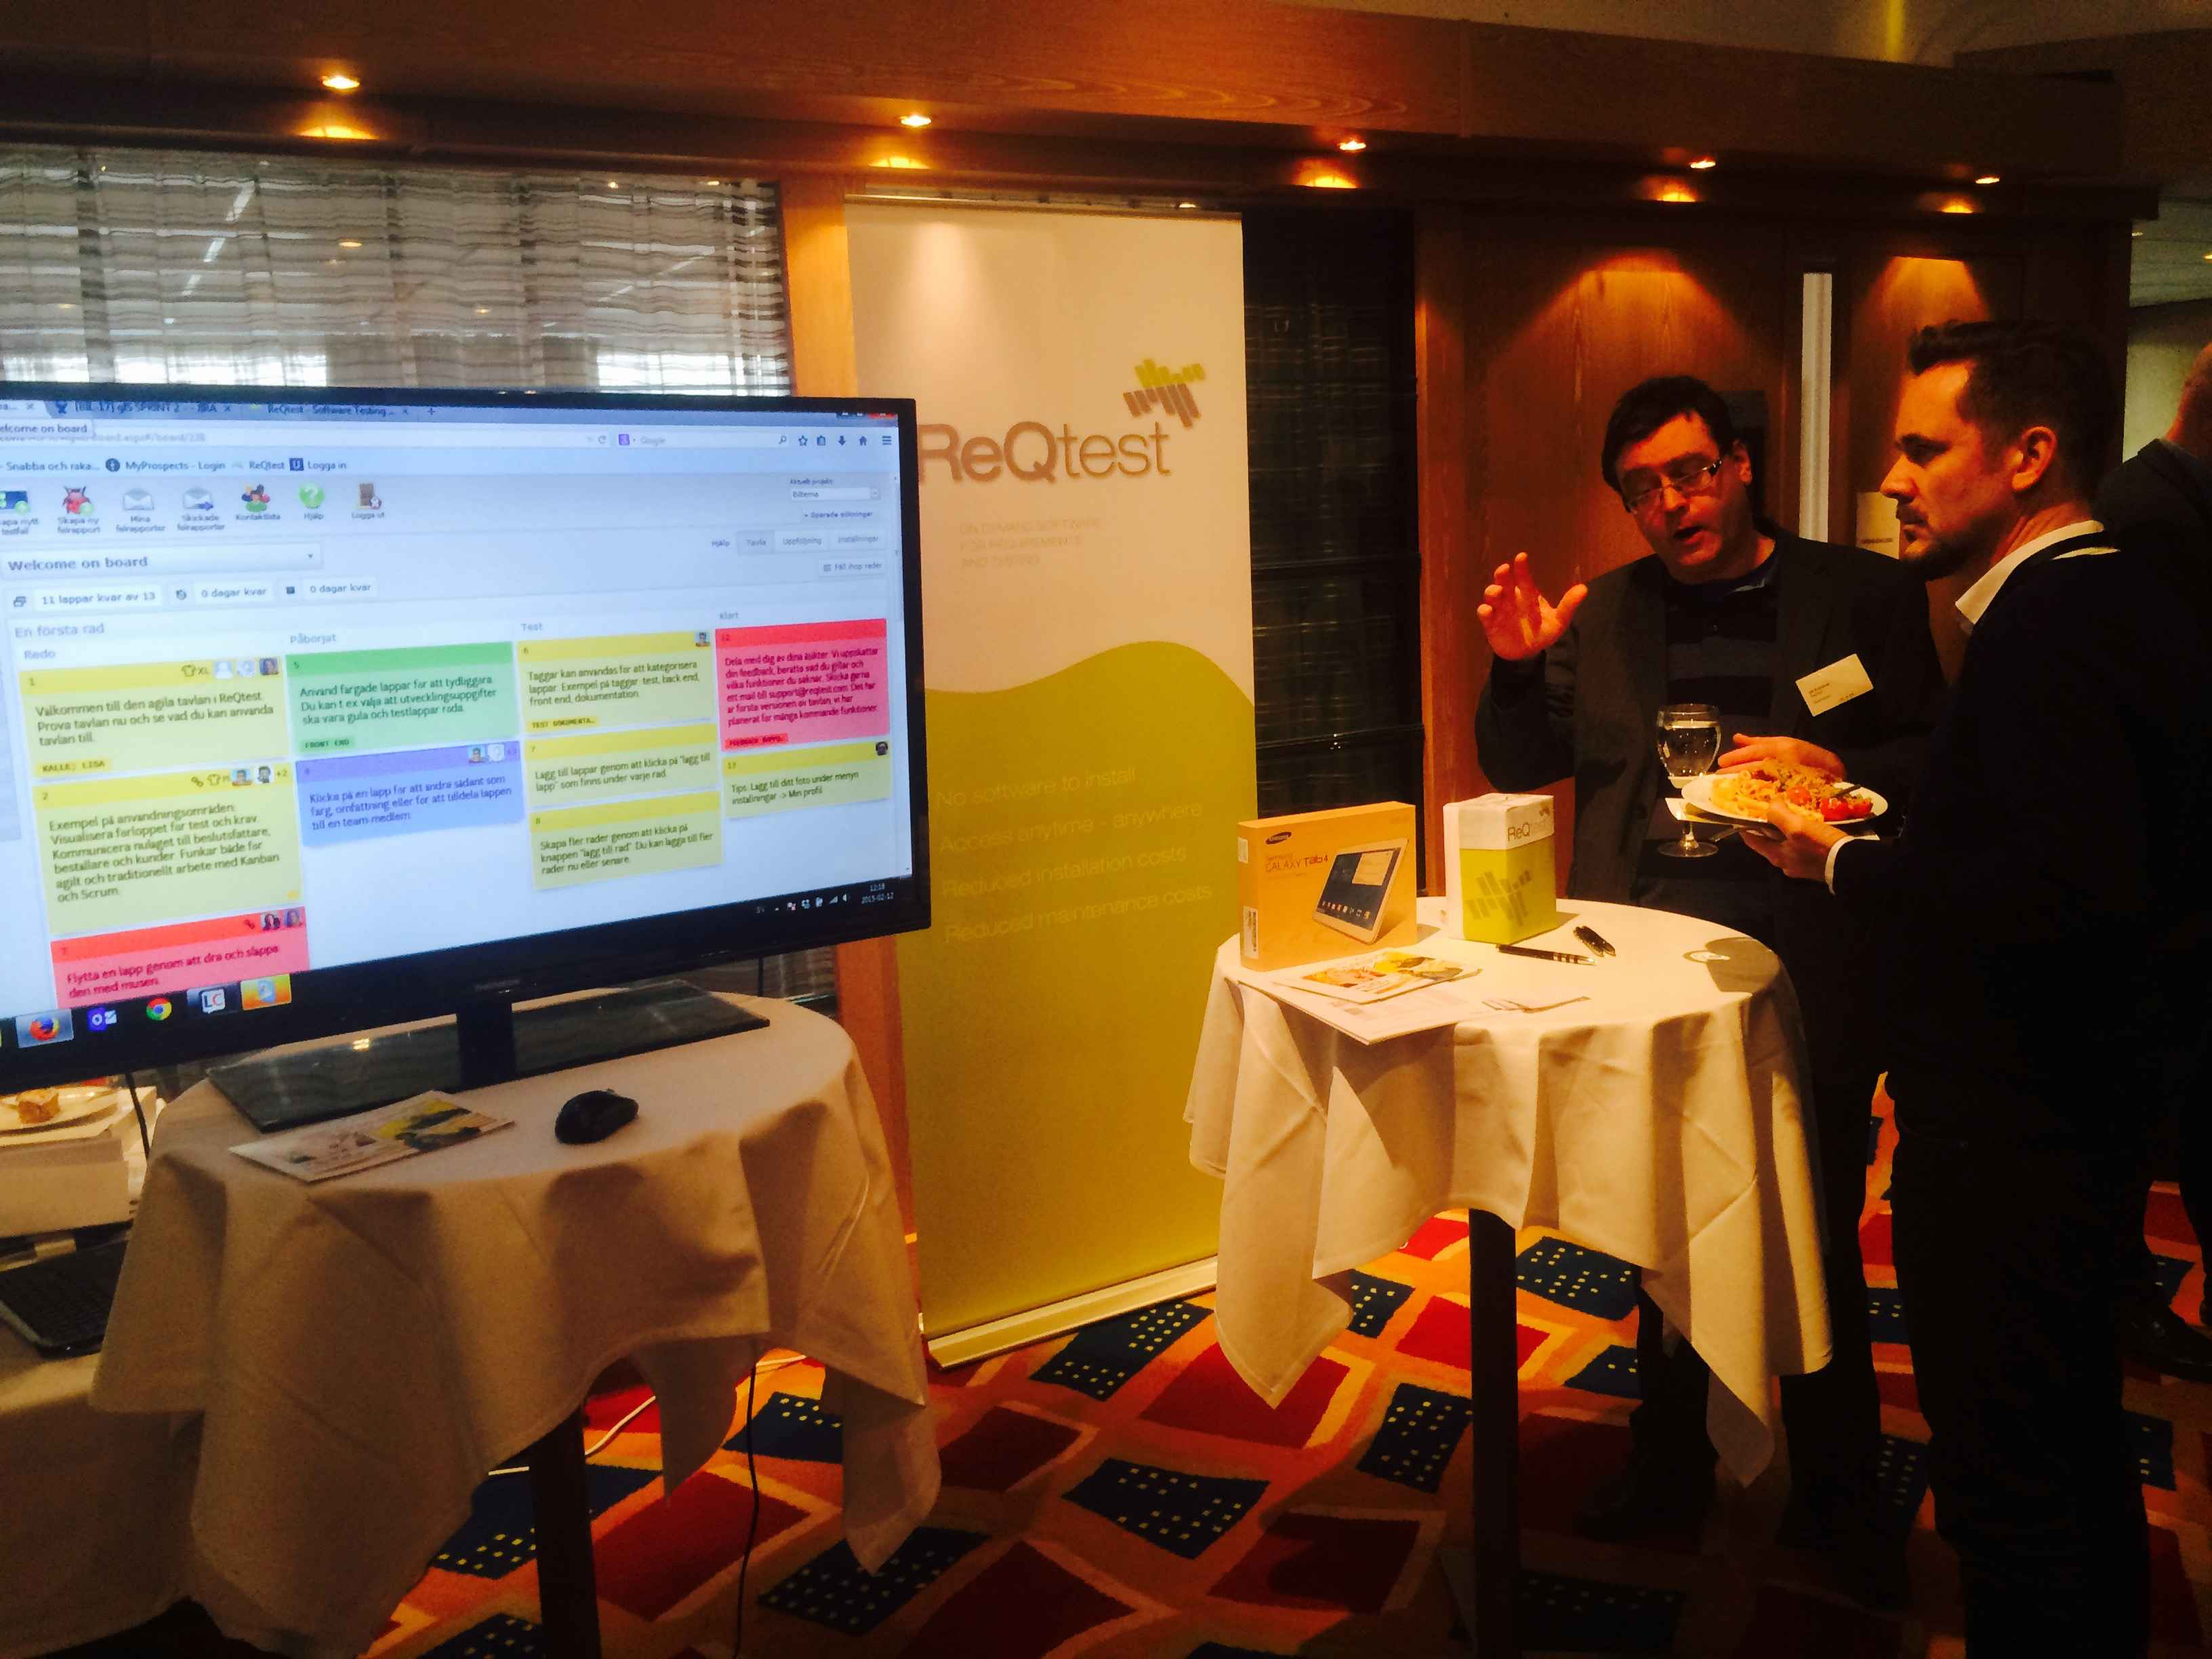 Ulf Eriksson demoing the ReQtest Agile Board at Software 2015 in Oslo